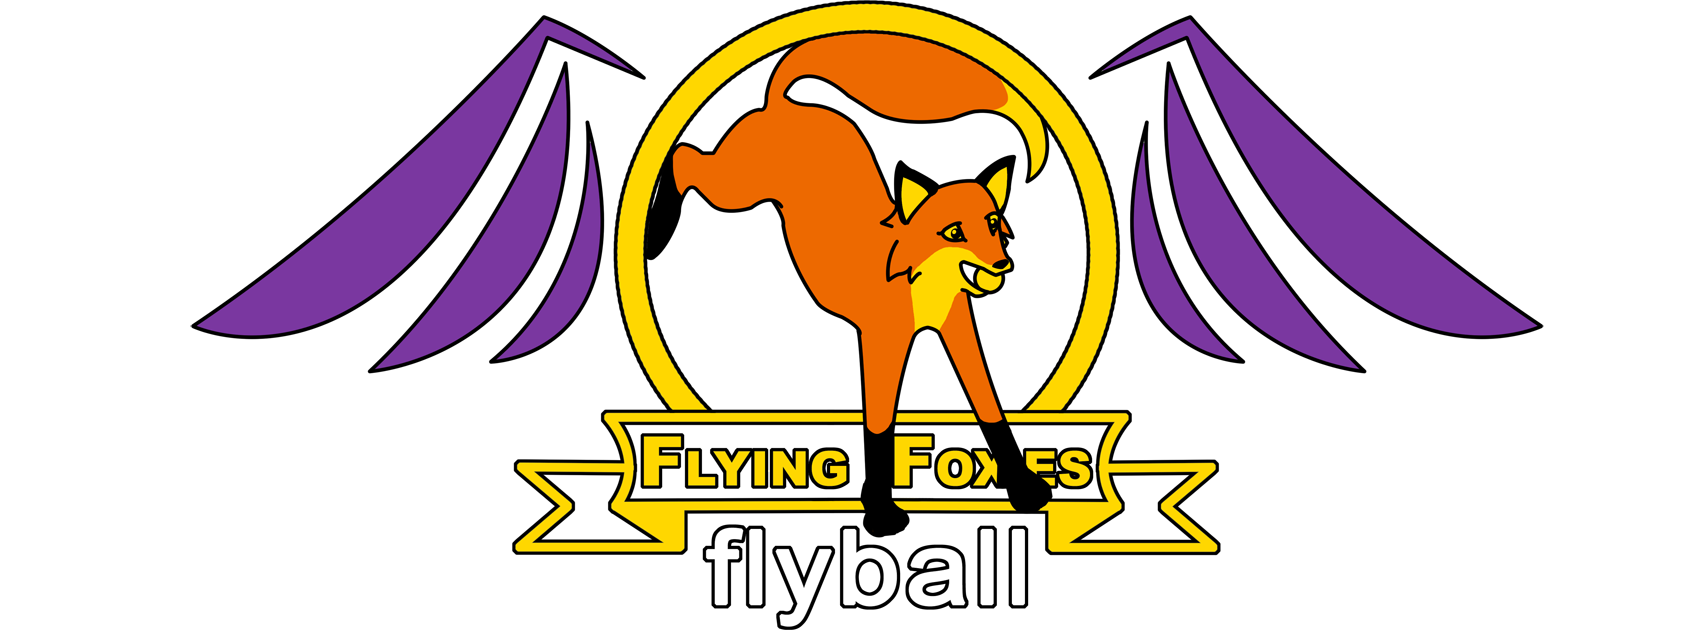 Flying Fox Flyball Team